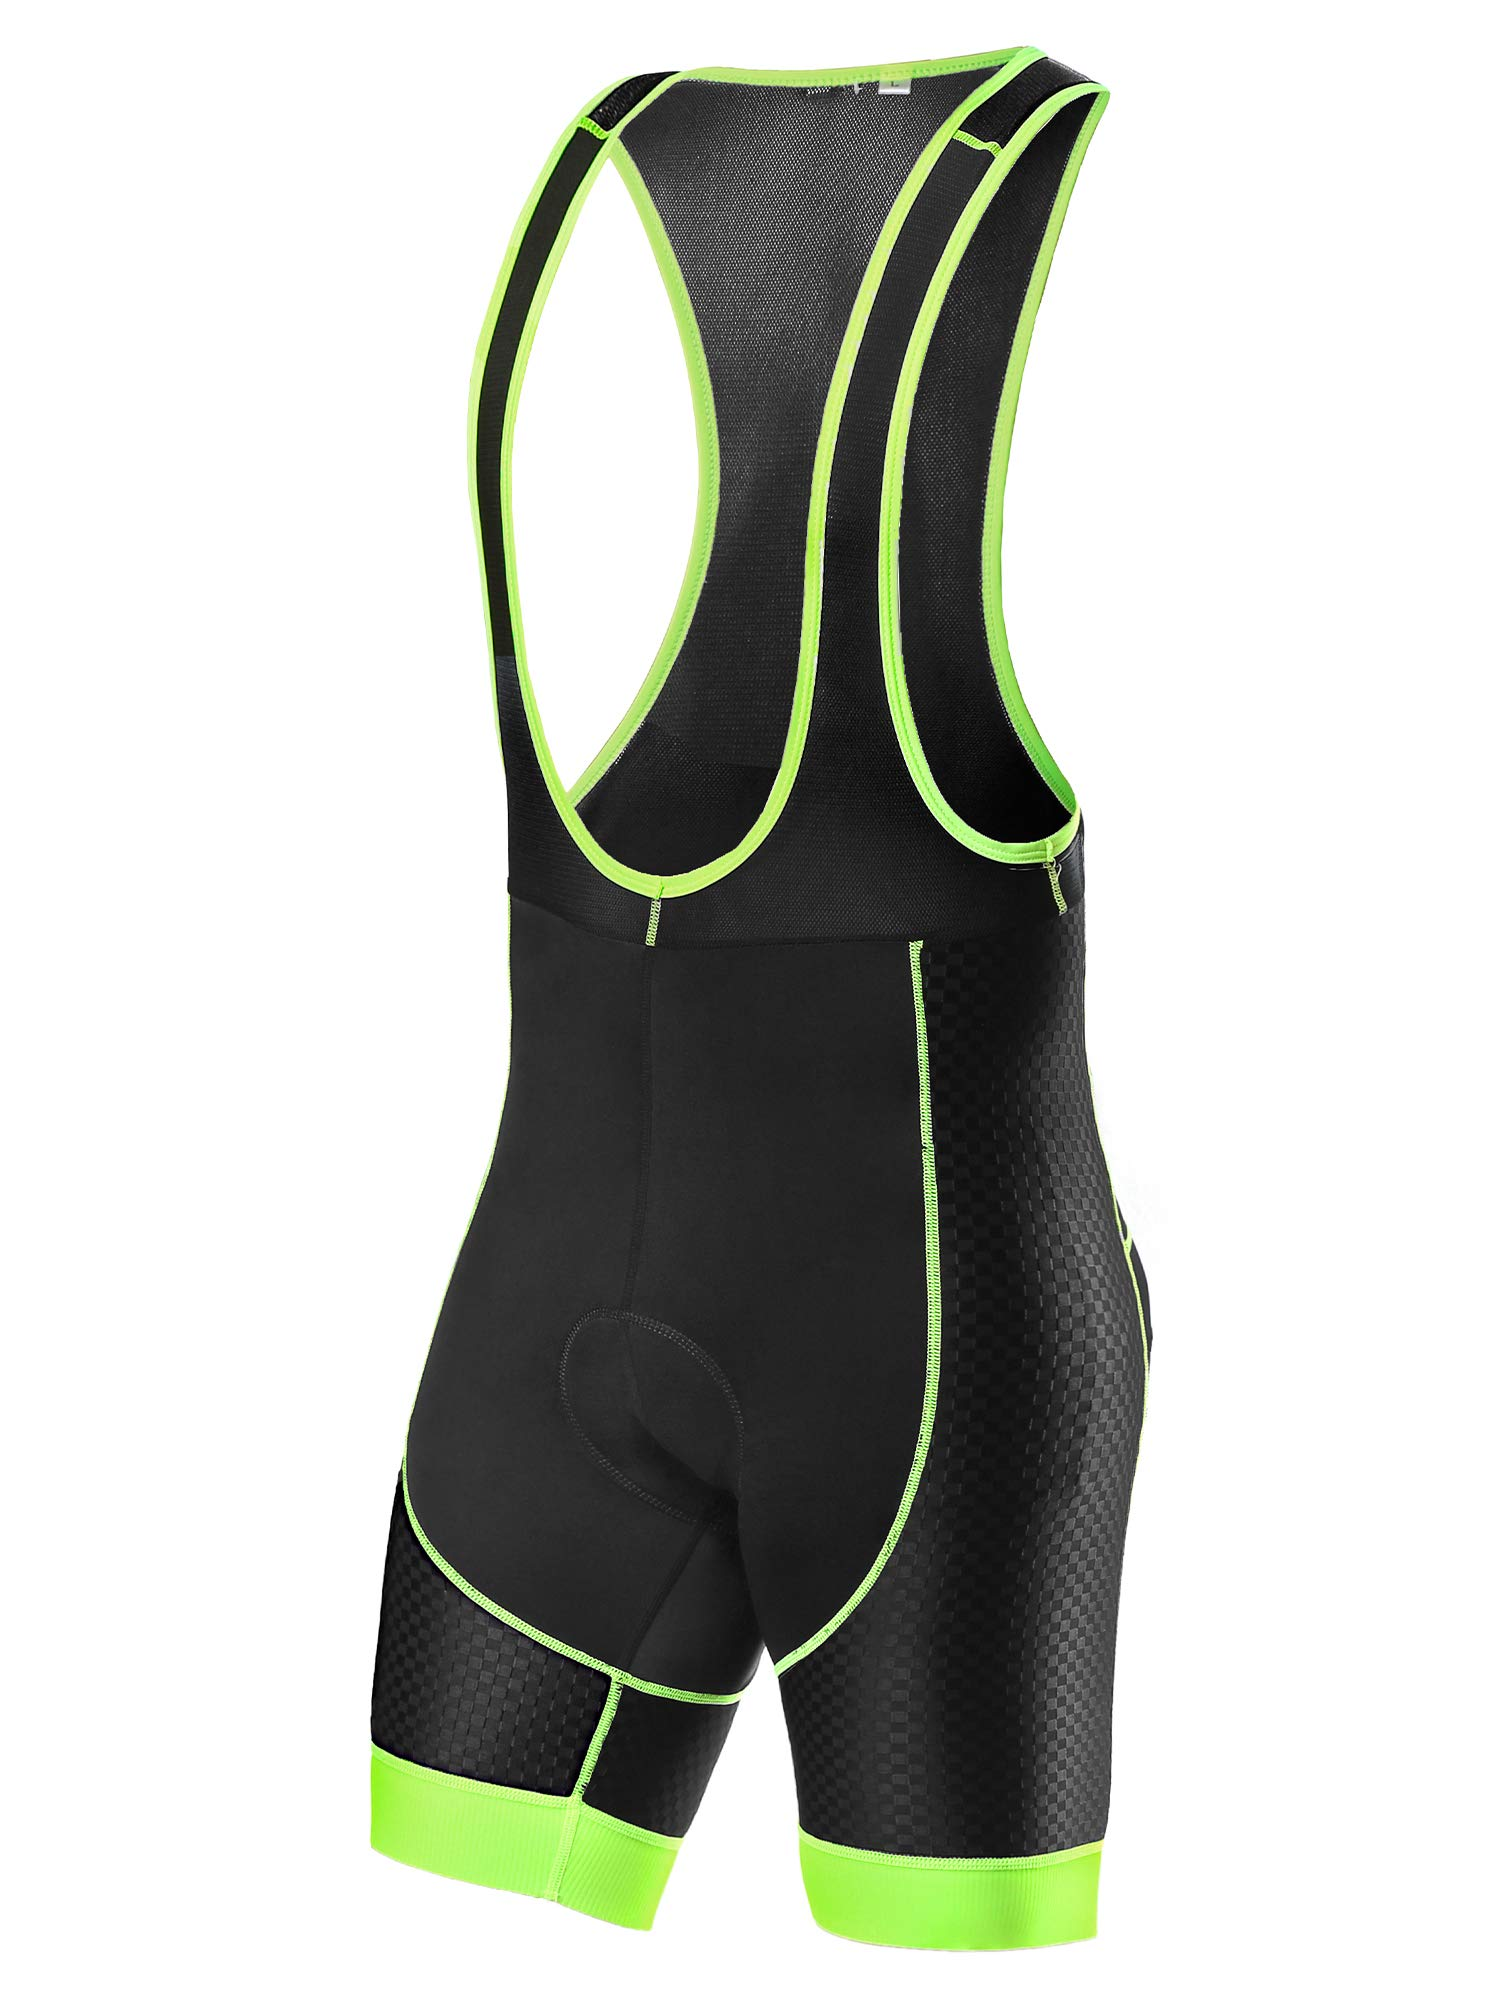 Letook Men's Bike Bib Shorts Gel Padded Bicycle Cycling Bibs Tight Breathable Mesh for Outdoor Riding 100015 Green M by Letook